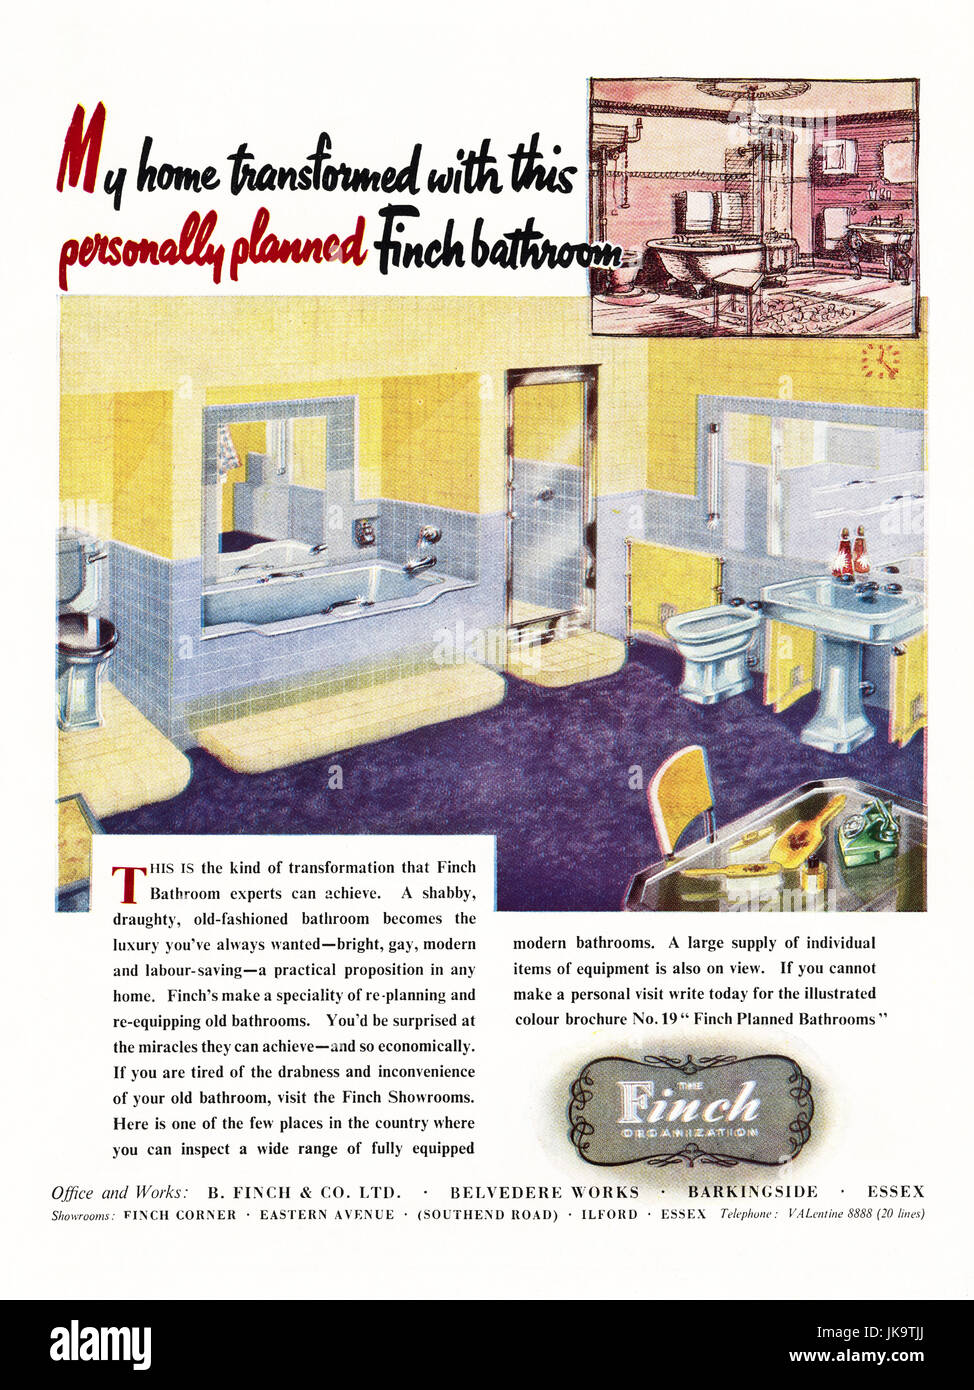 1950s original old vintage advertisement advertising Finch Bathroom company in magazine circa 1950 - Stock Image